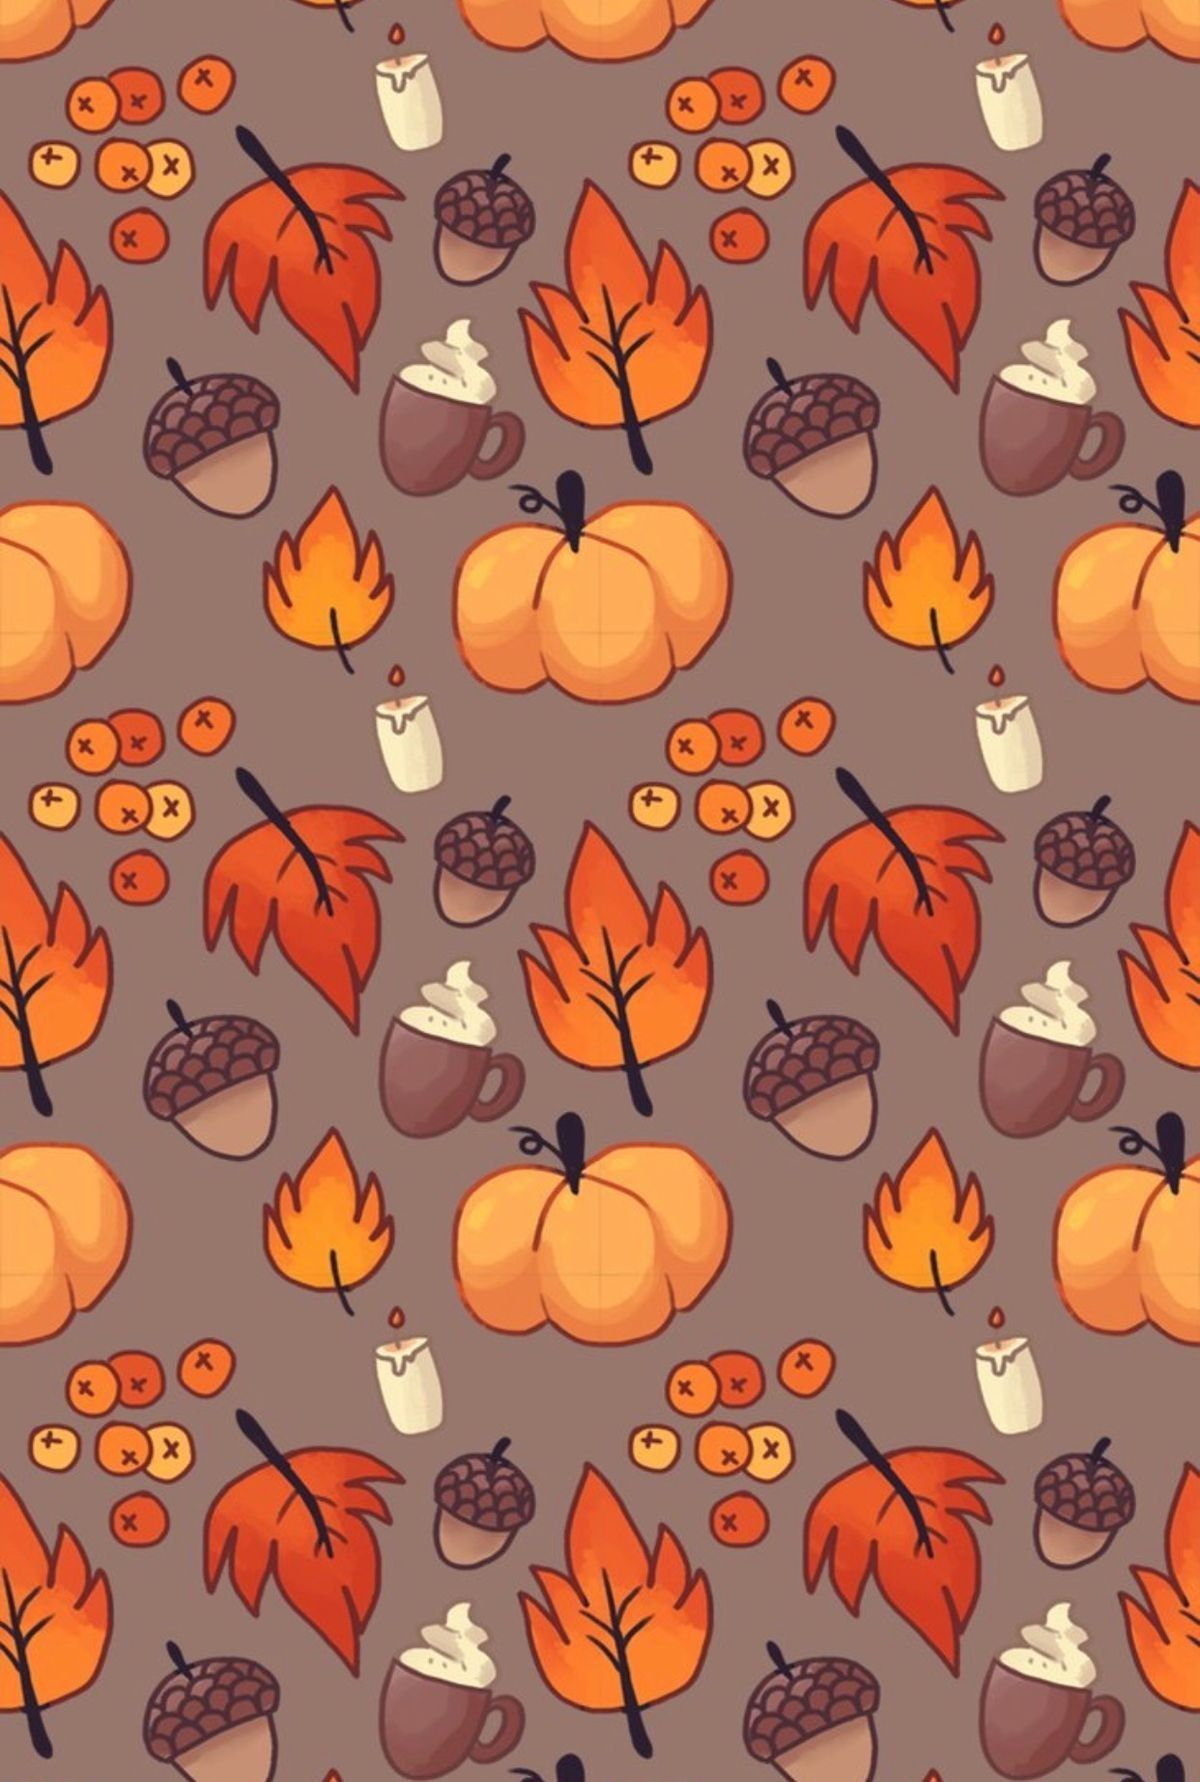 Carbon pumpkin Wallpaper Halloween Holidays Wallpapers) – Wallpapers and Backgrounds